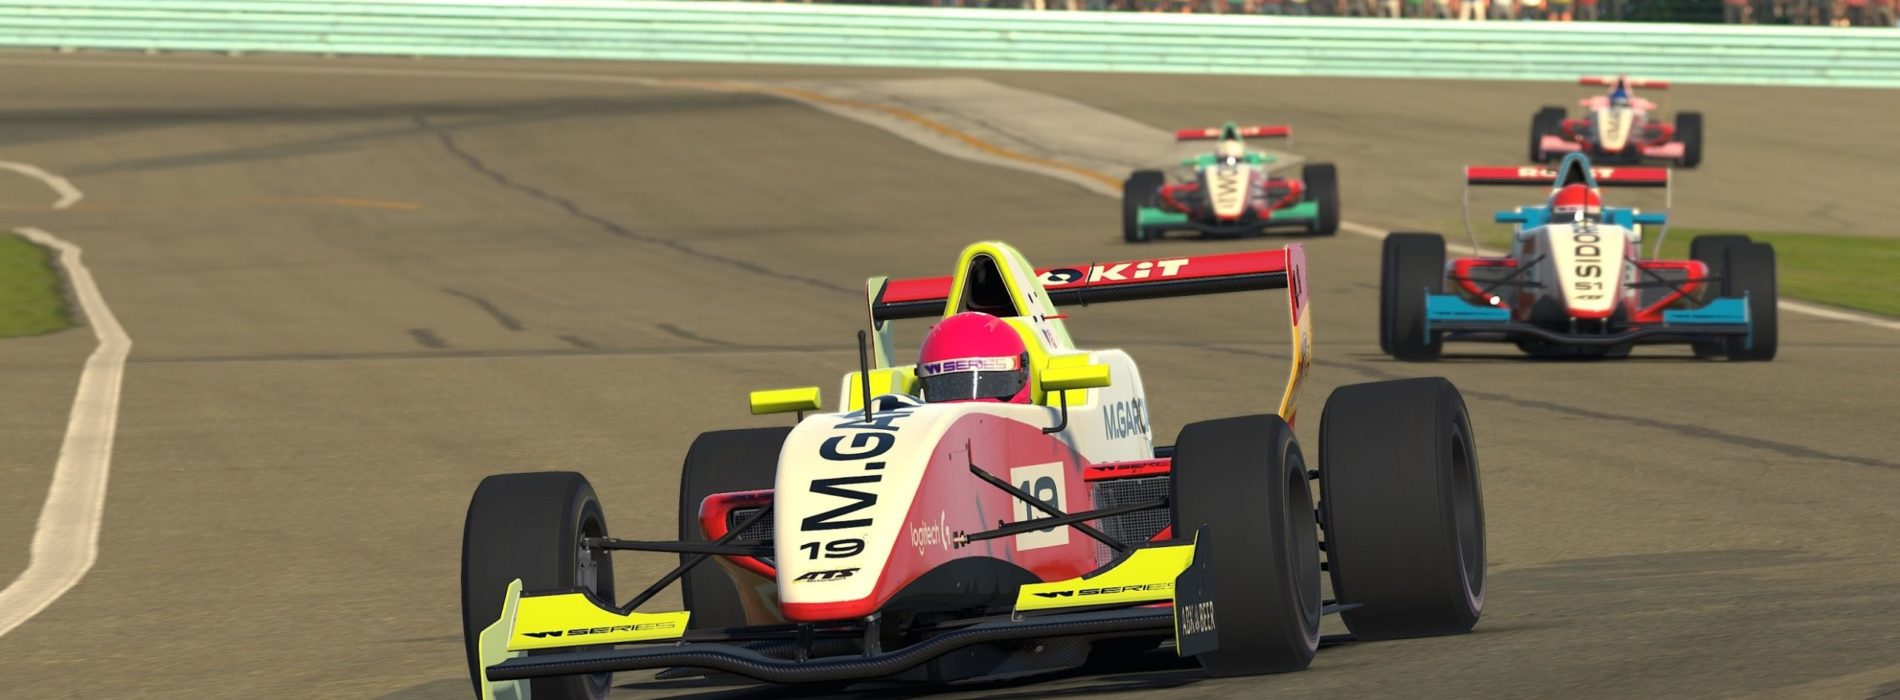 Marta Garcia proves competitive F3 driver in W Series ESports League – currently 3rd Overall